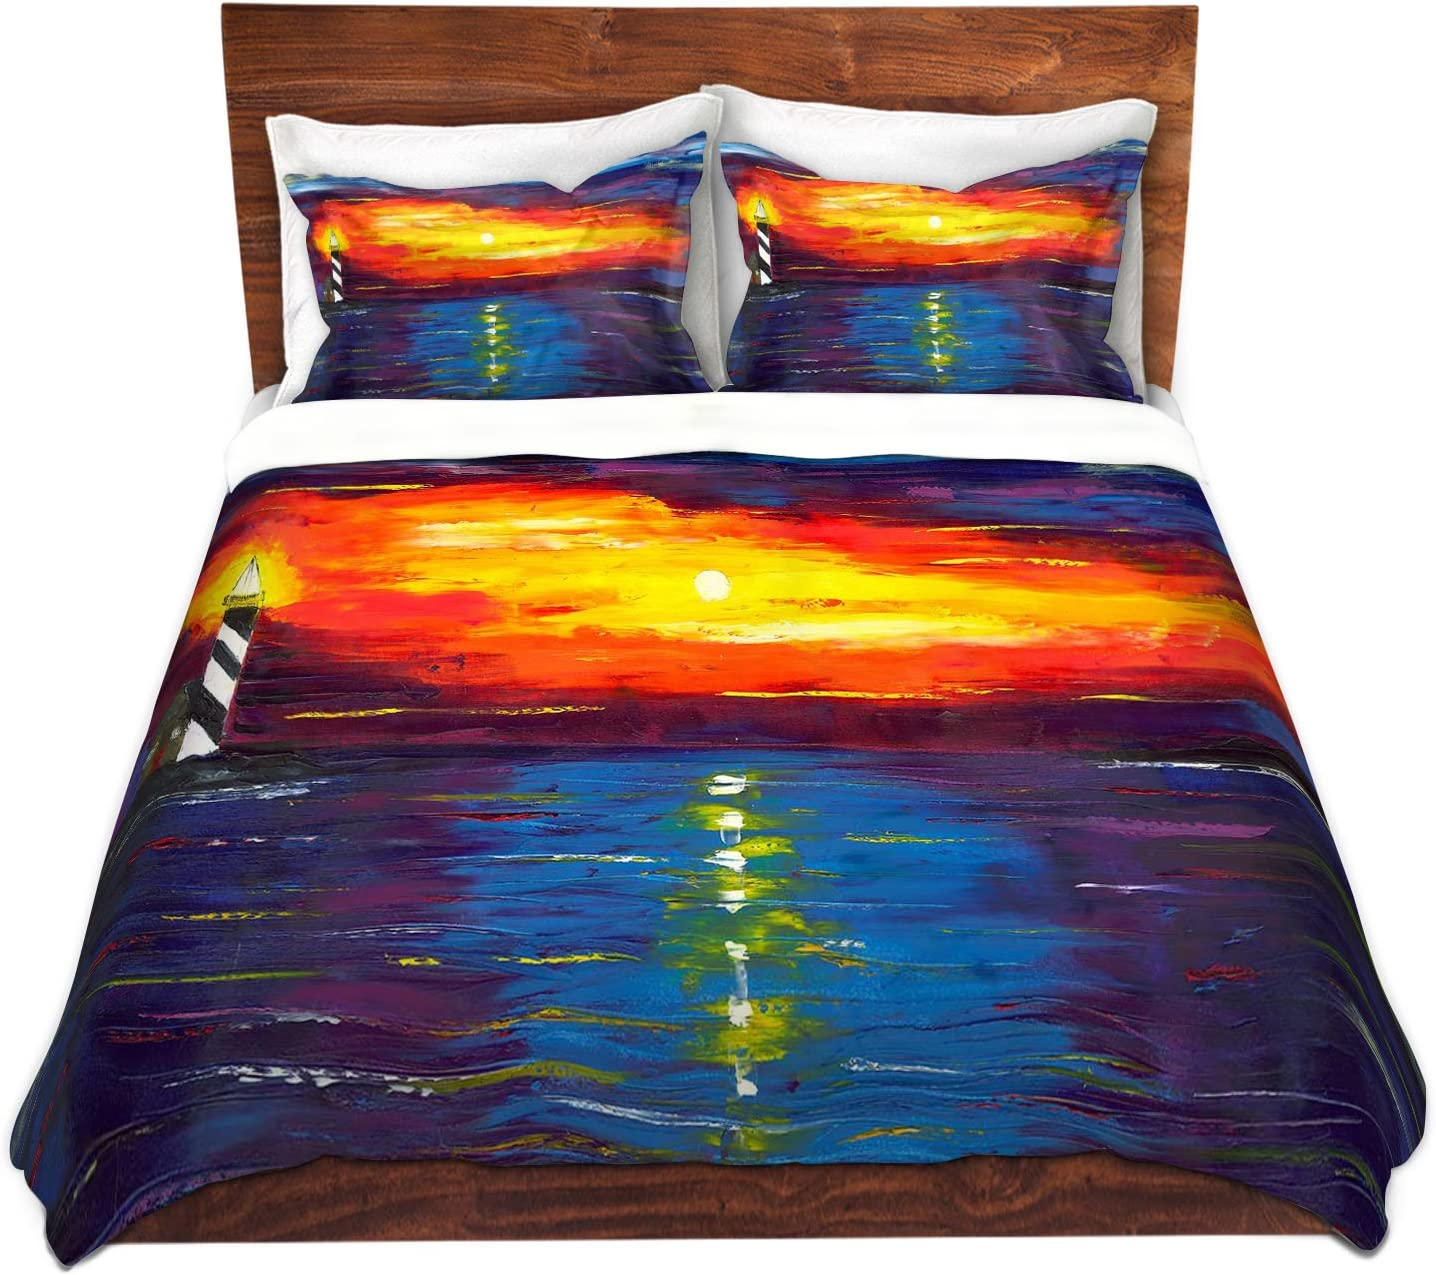 Duvet Cover Brushed Twill Twin, Queen, King Sets DiaNoche Designs by Jessilyn Park - Sunset at Lighthouse Bedroom and Bedding Ideas